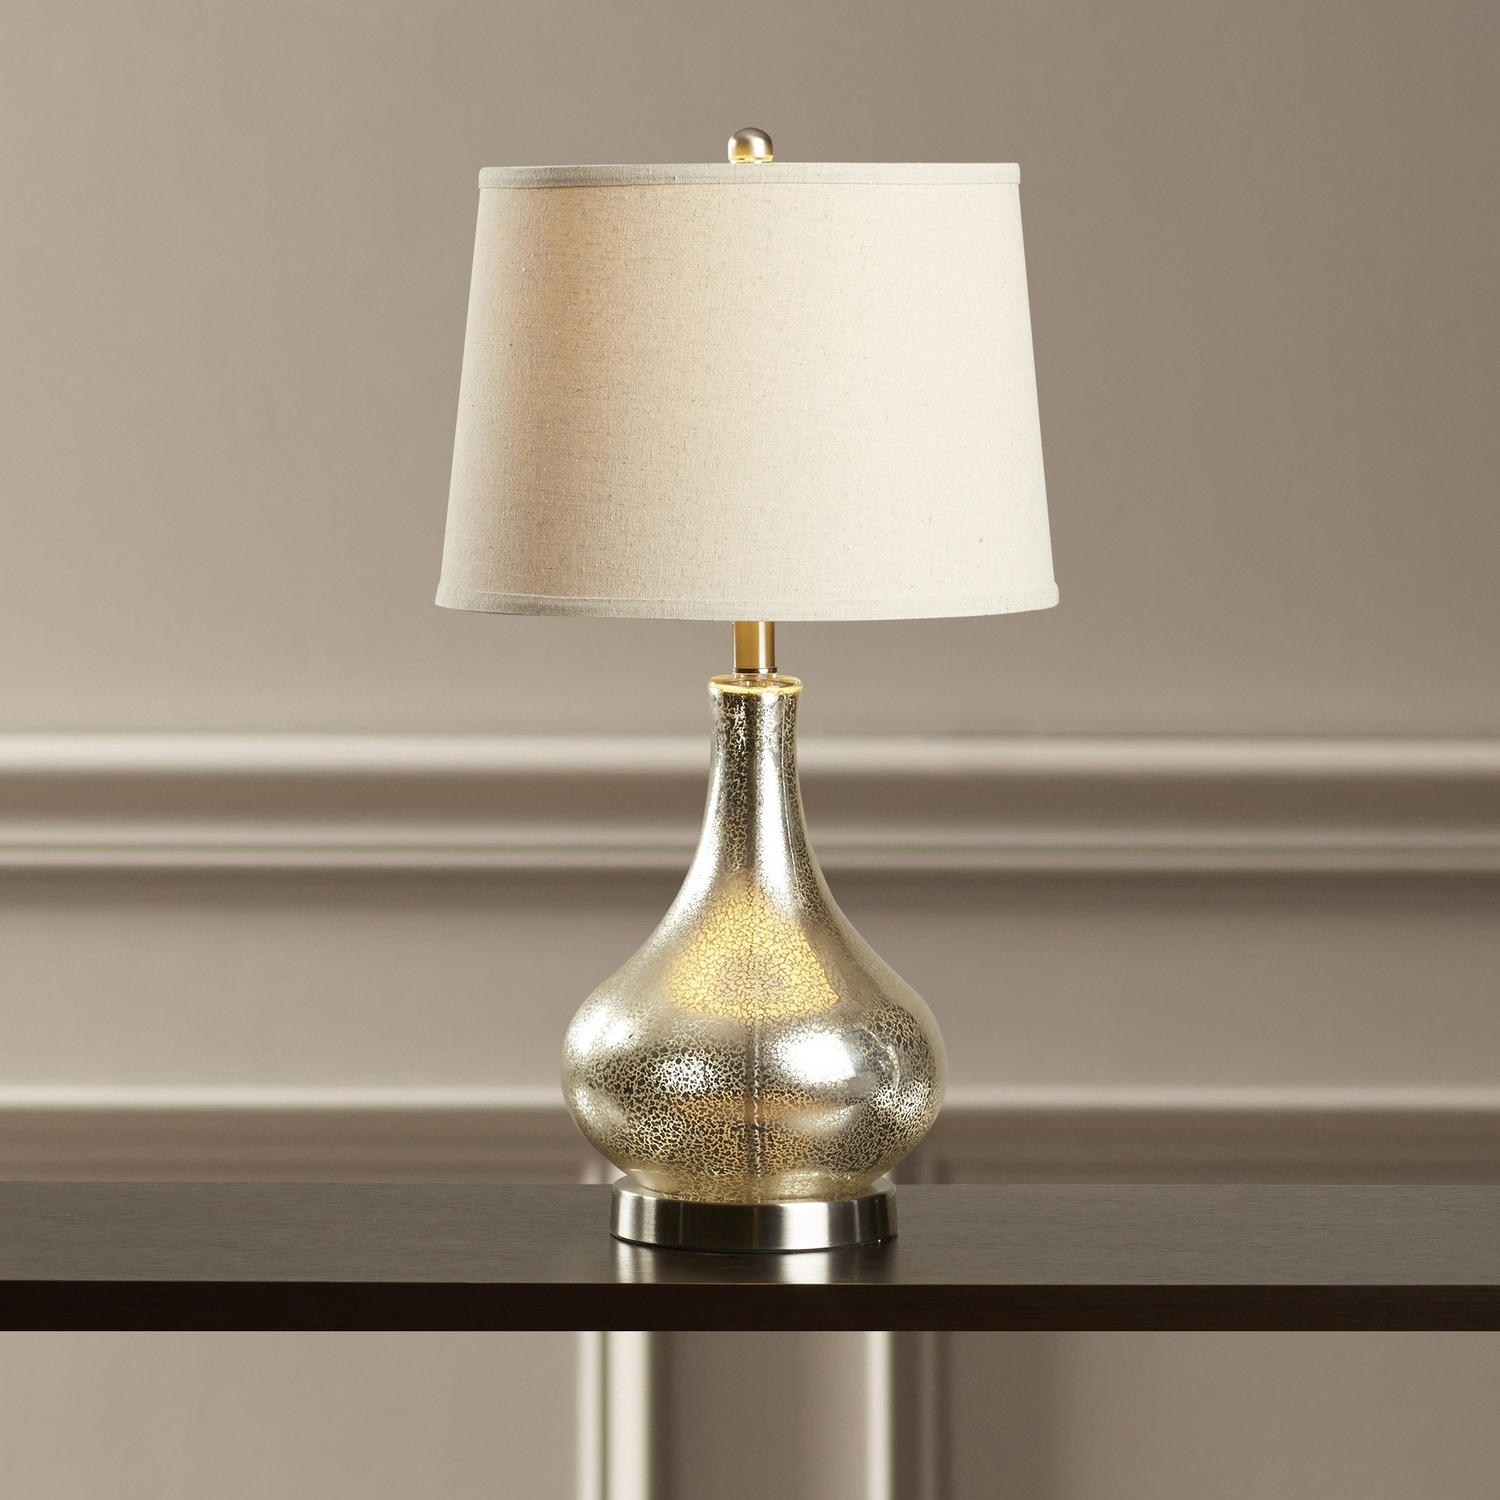 62 Most Class Cheap Table Lamps Glass Bedroom Small For Living Room Pertaining To Preferred Gold Living Room Table Lamps (View 2 of 20)